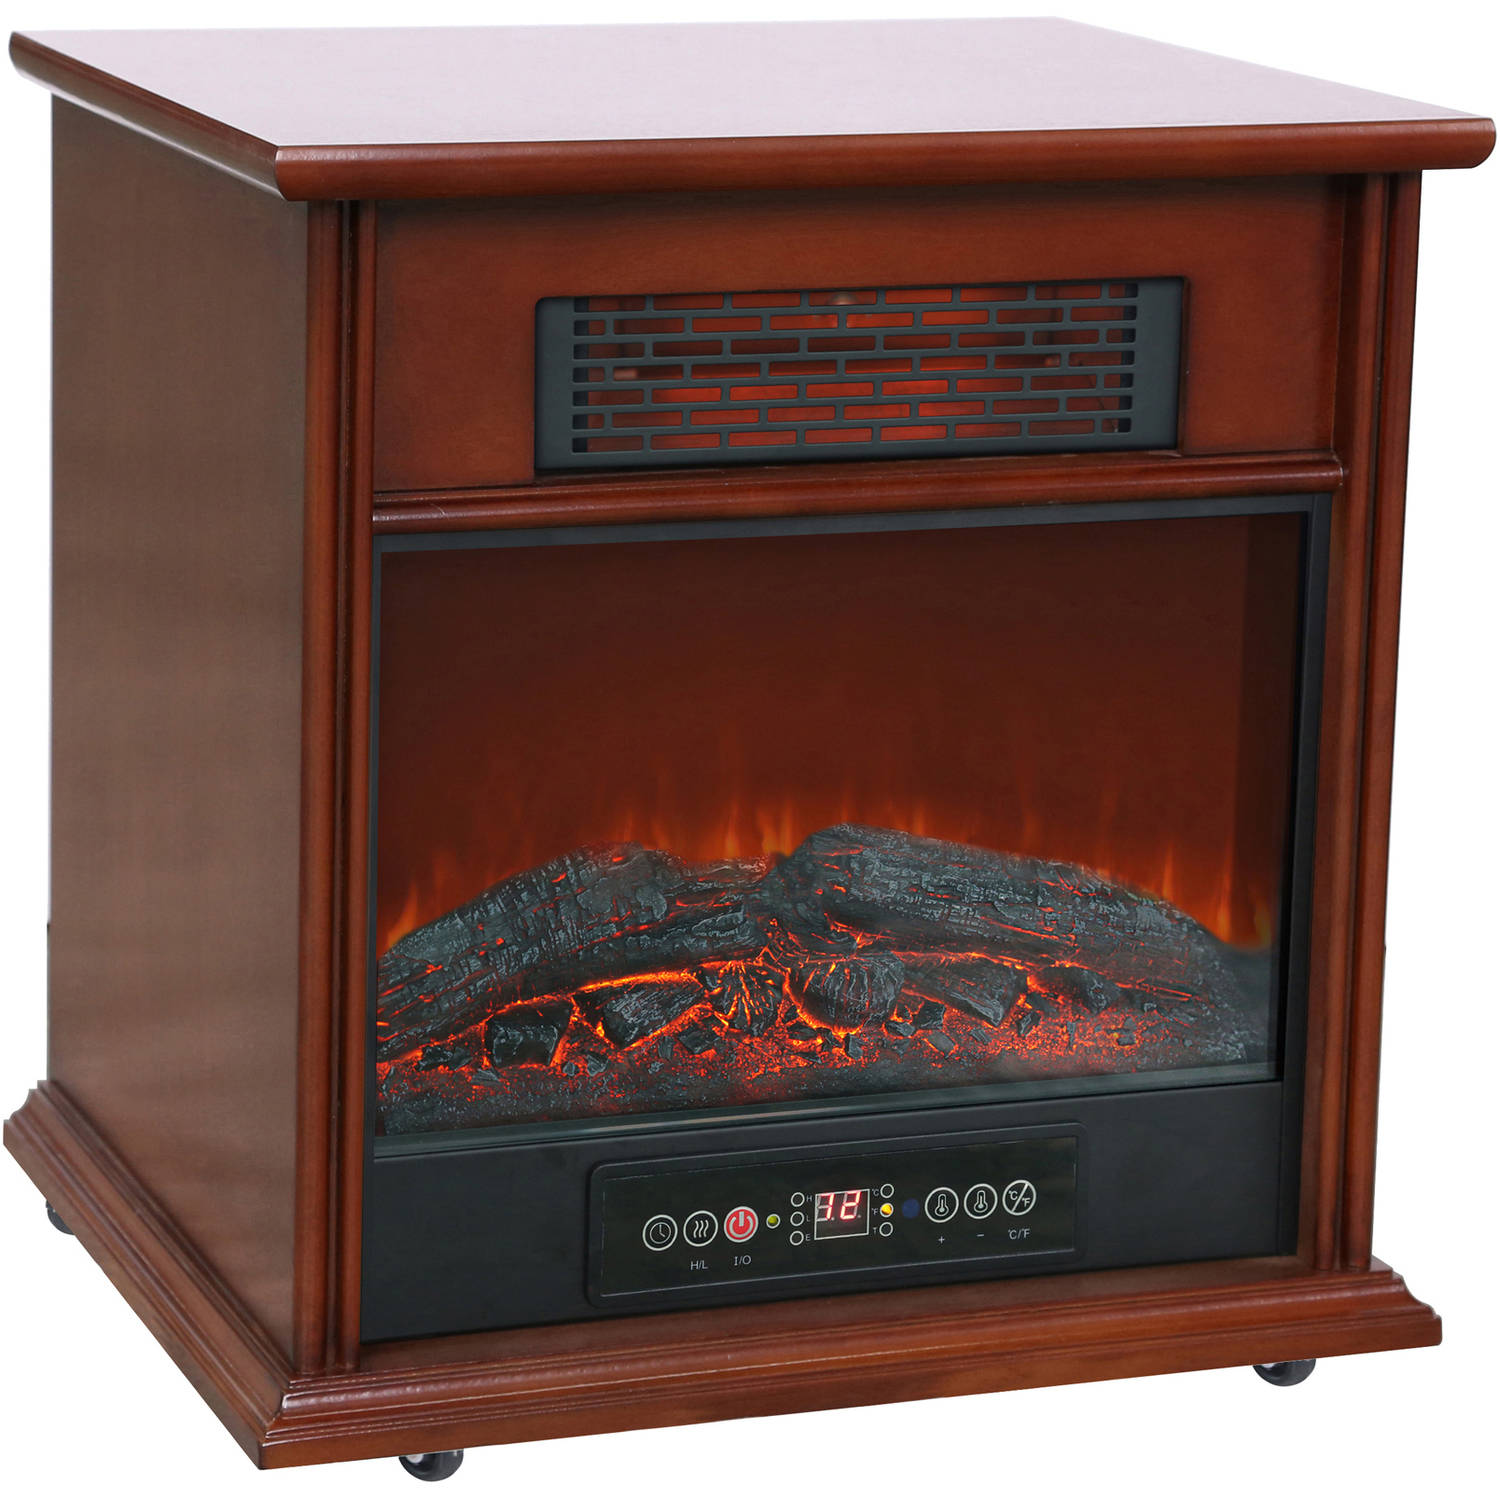 1500W Hearth Trends Infrared Electric Fireplace Walmartcom